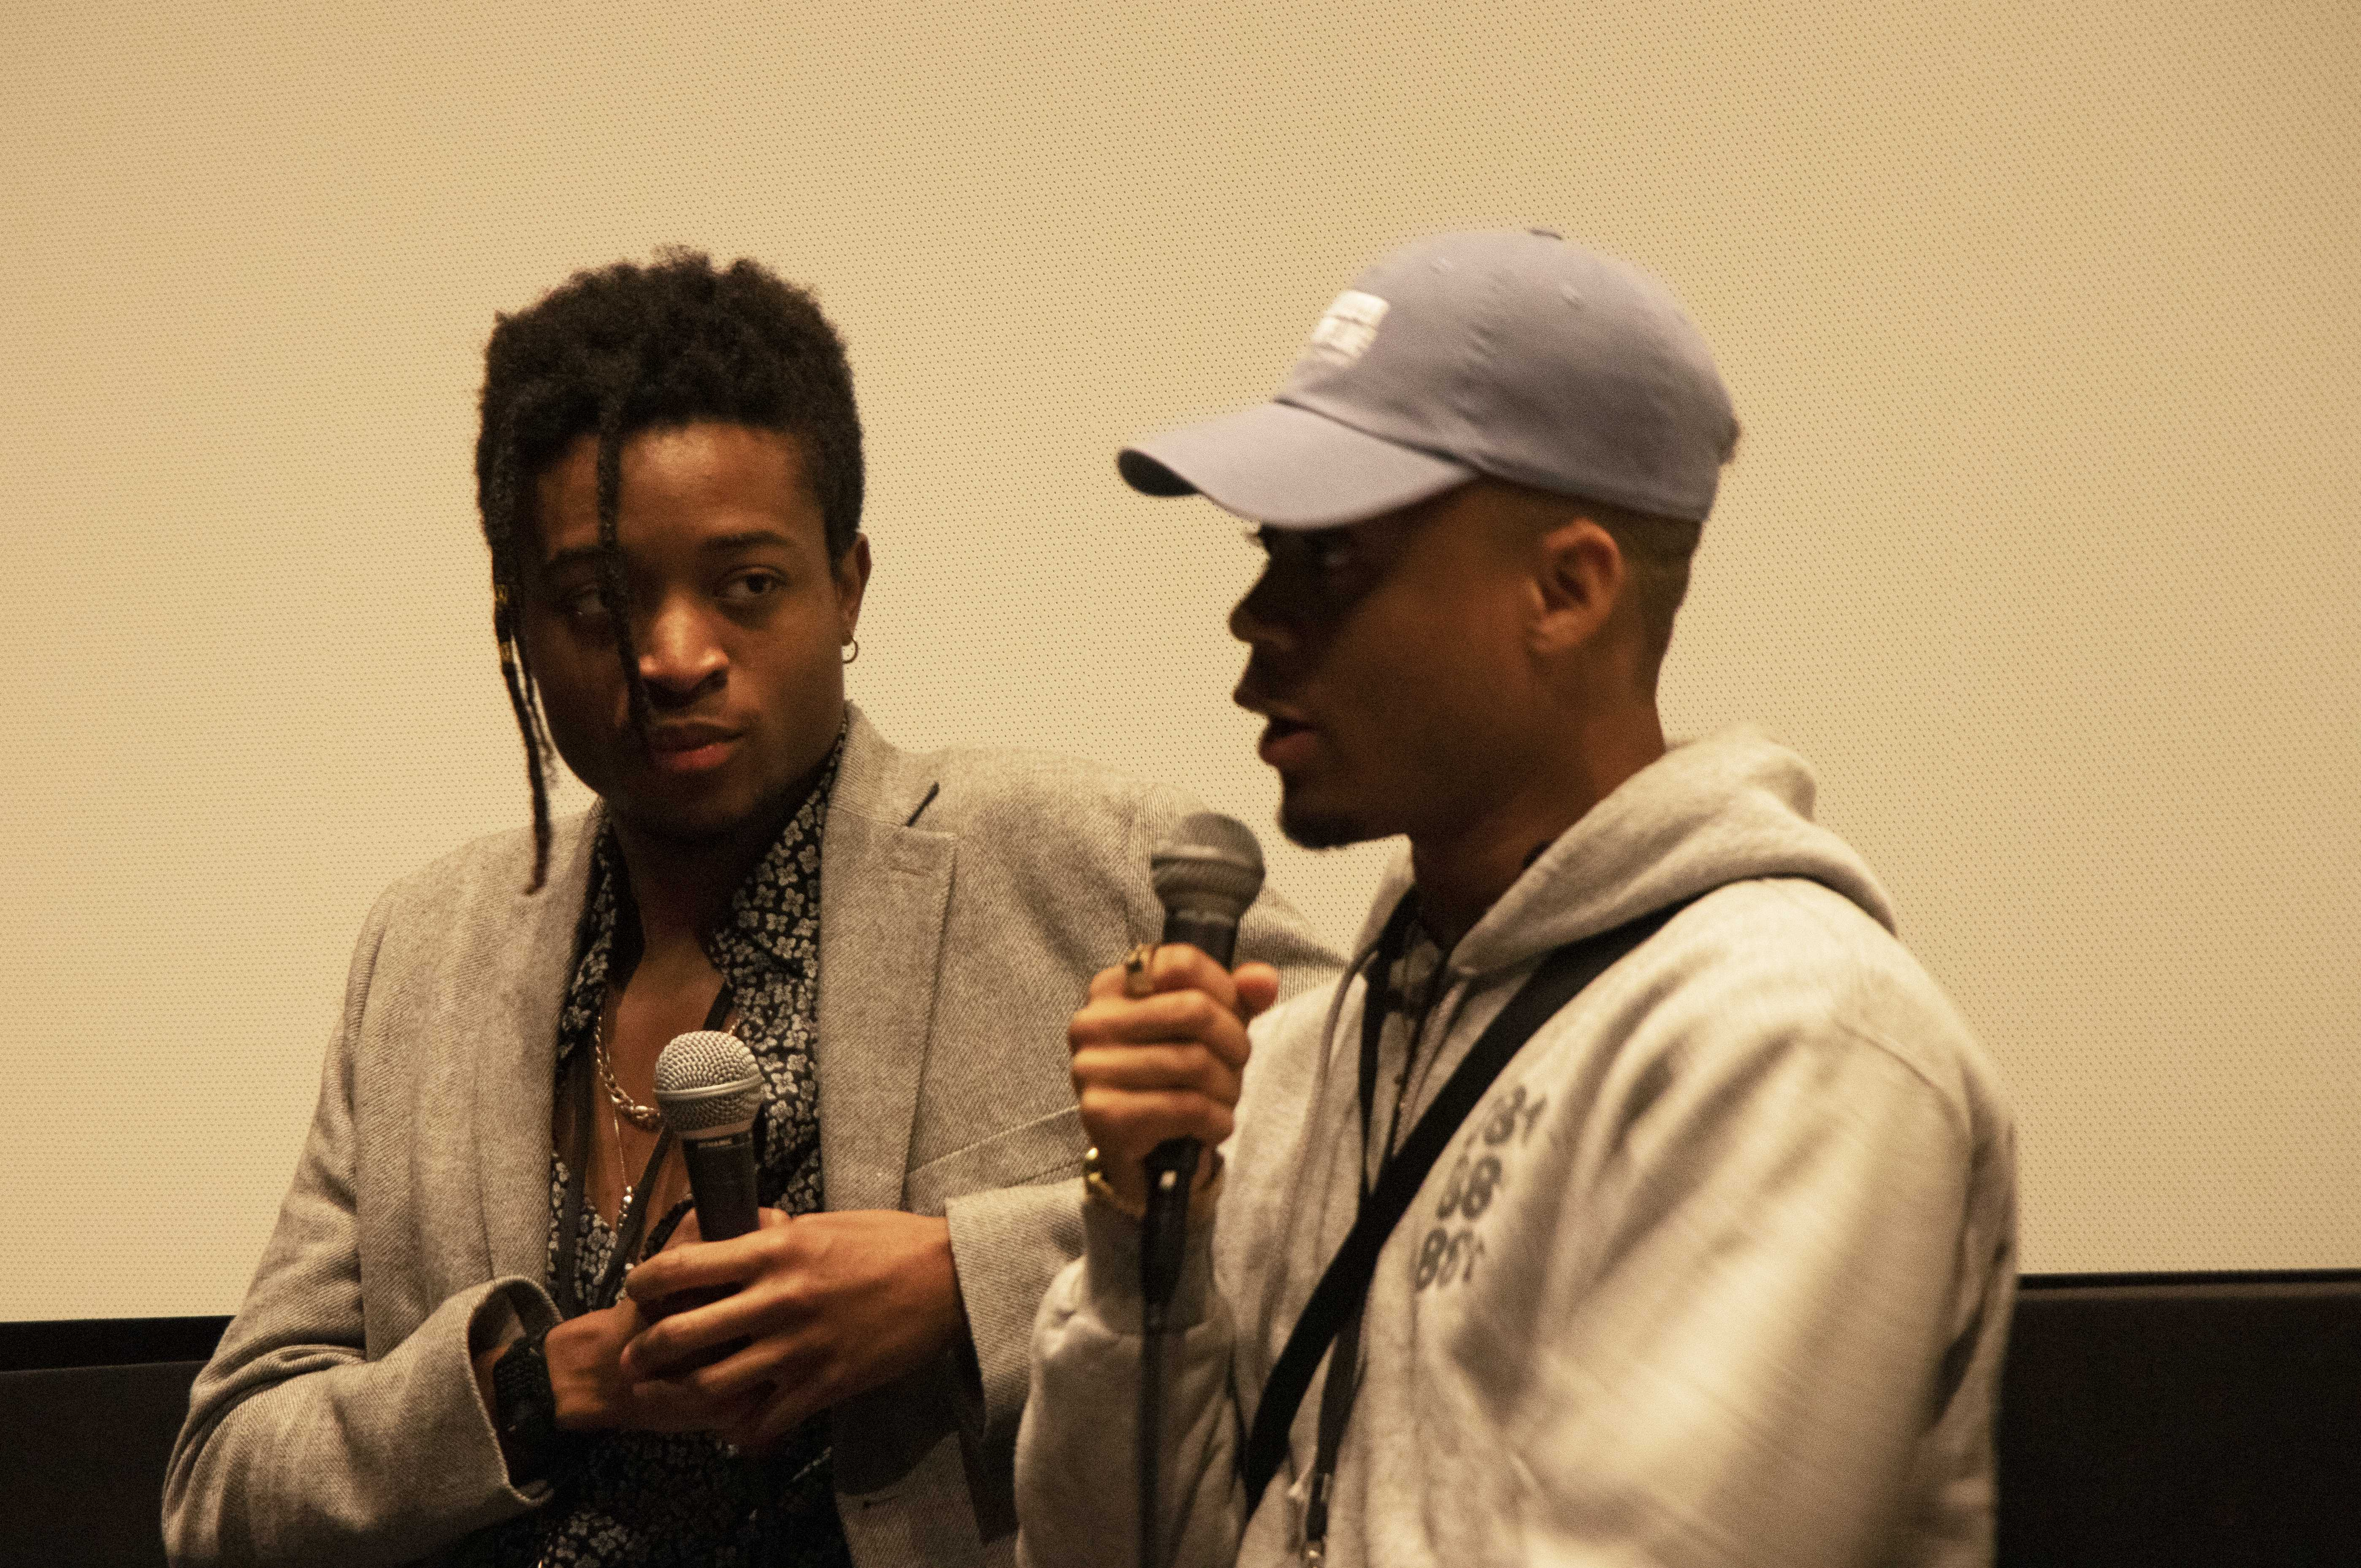 Evan McDonald (left) and Jeru Berry (right) created 'No Whites Allowed' and the documentary won the Audience Award at Emerson's Film Festival. - Photo by Thomas Bloxham / Beacon Correspondent